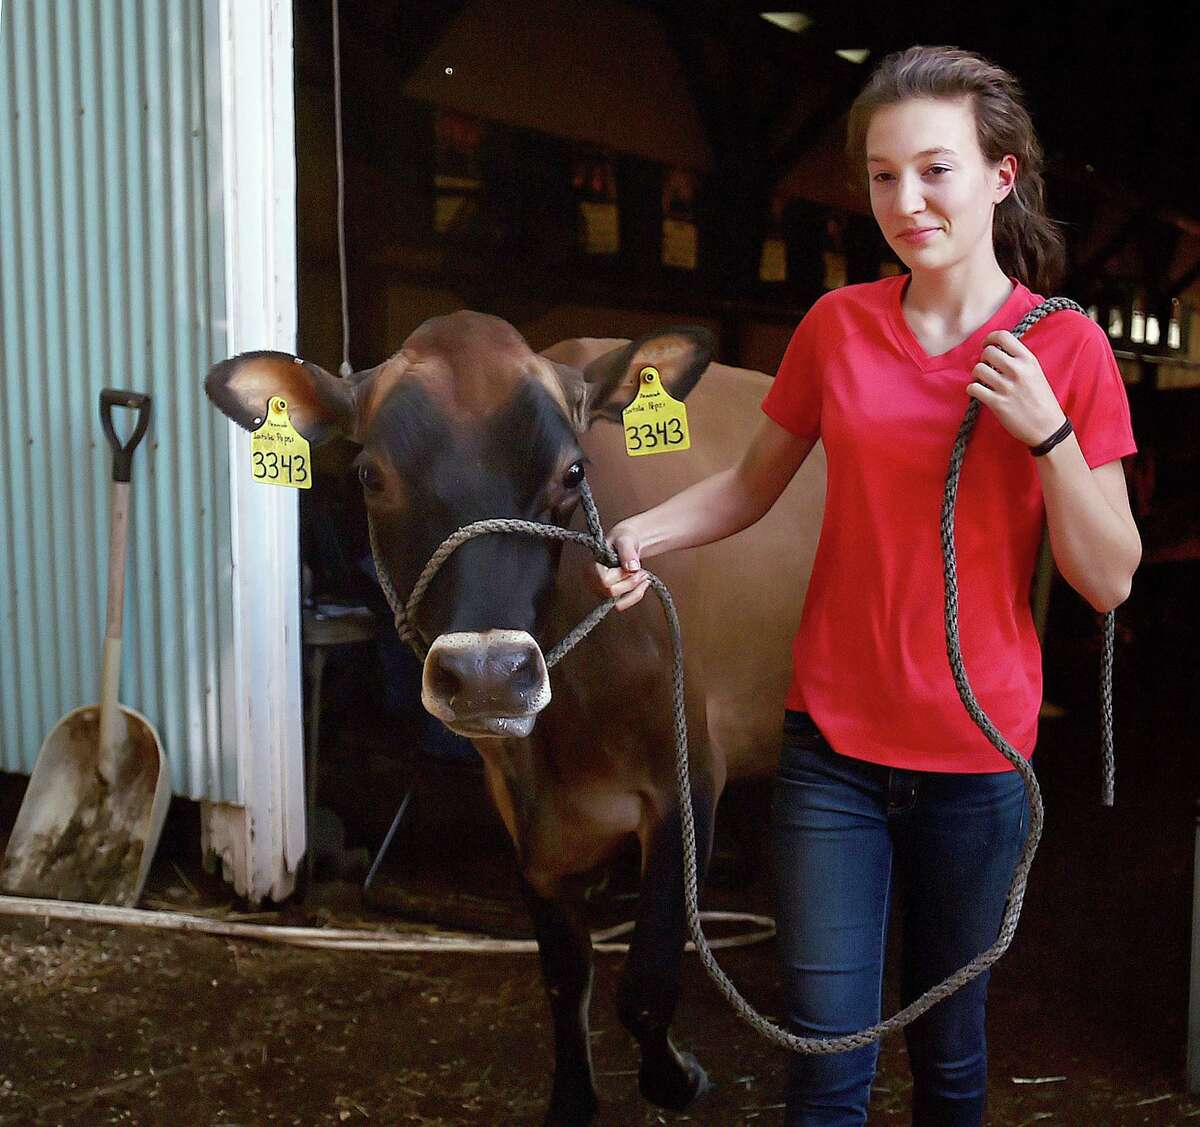 For 75-plus years, the North Haven Fair has been a friendly harbinger of autumn - with strolling jugglers, ox drawing, musical acts, racing pigs and (we notice this year) redneck horseshoes, which is played with toilet seats. It's back Thursday-Sunday. Find out more.